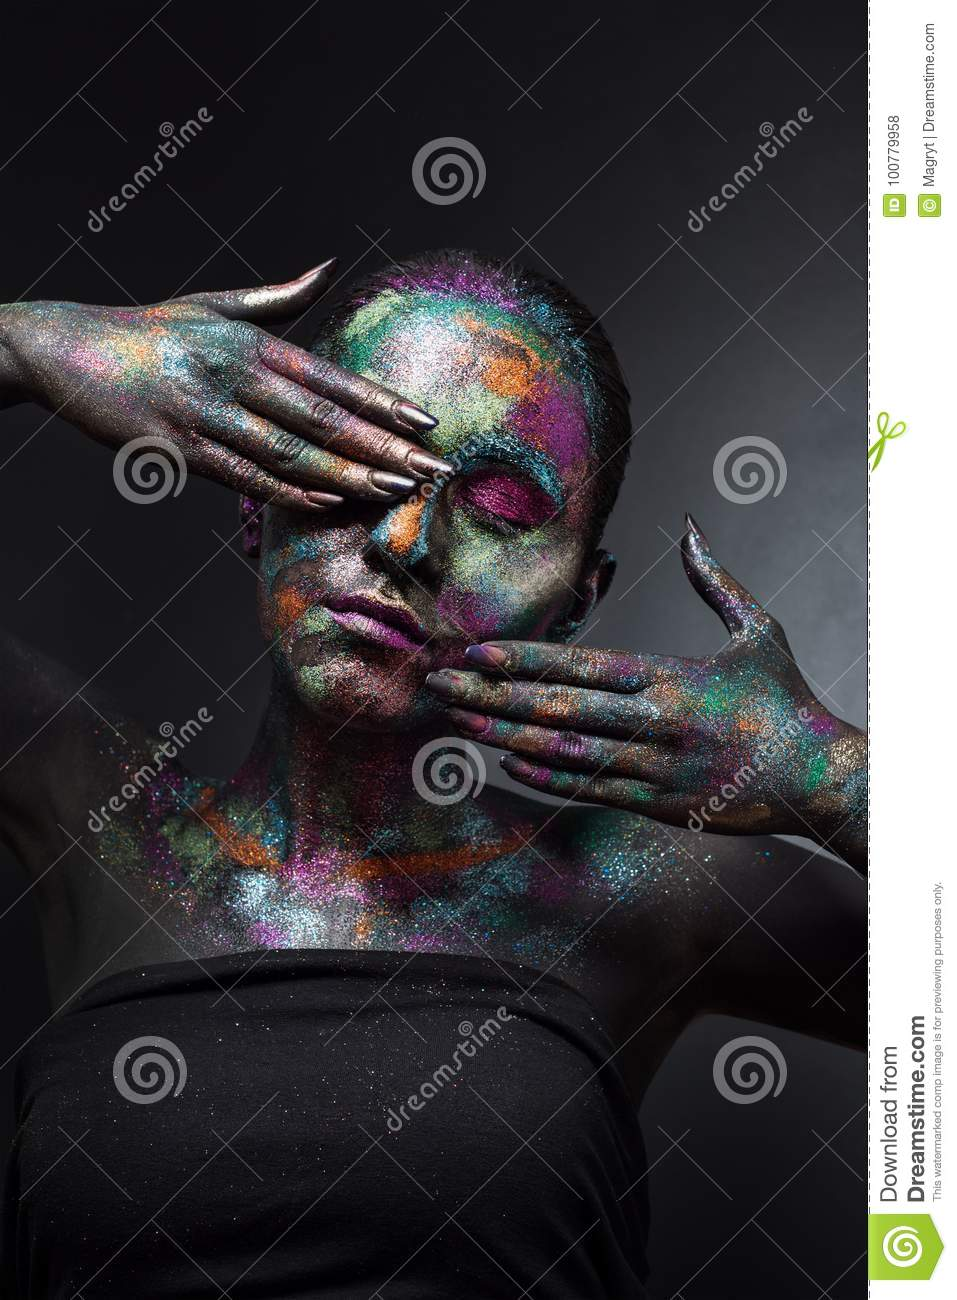 Young Artistic Woman In Black Paint And Colourful Powder Glowing Dark Makeup Creative Body Art On The Theme Of Space Stock Photo Image Of Eyes Cosmic 100779958